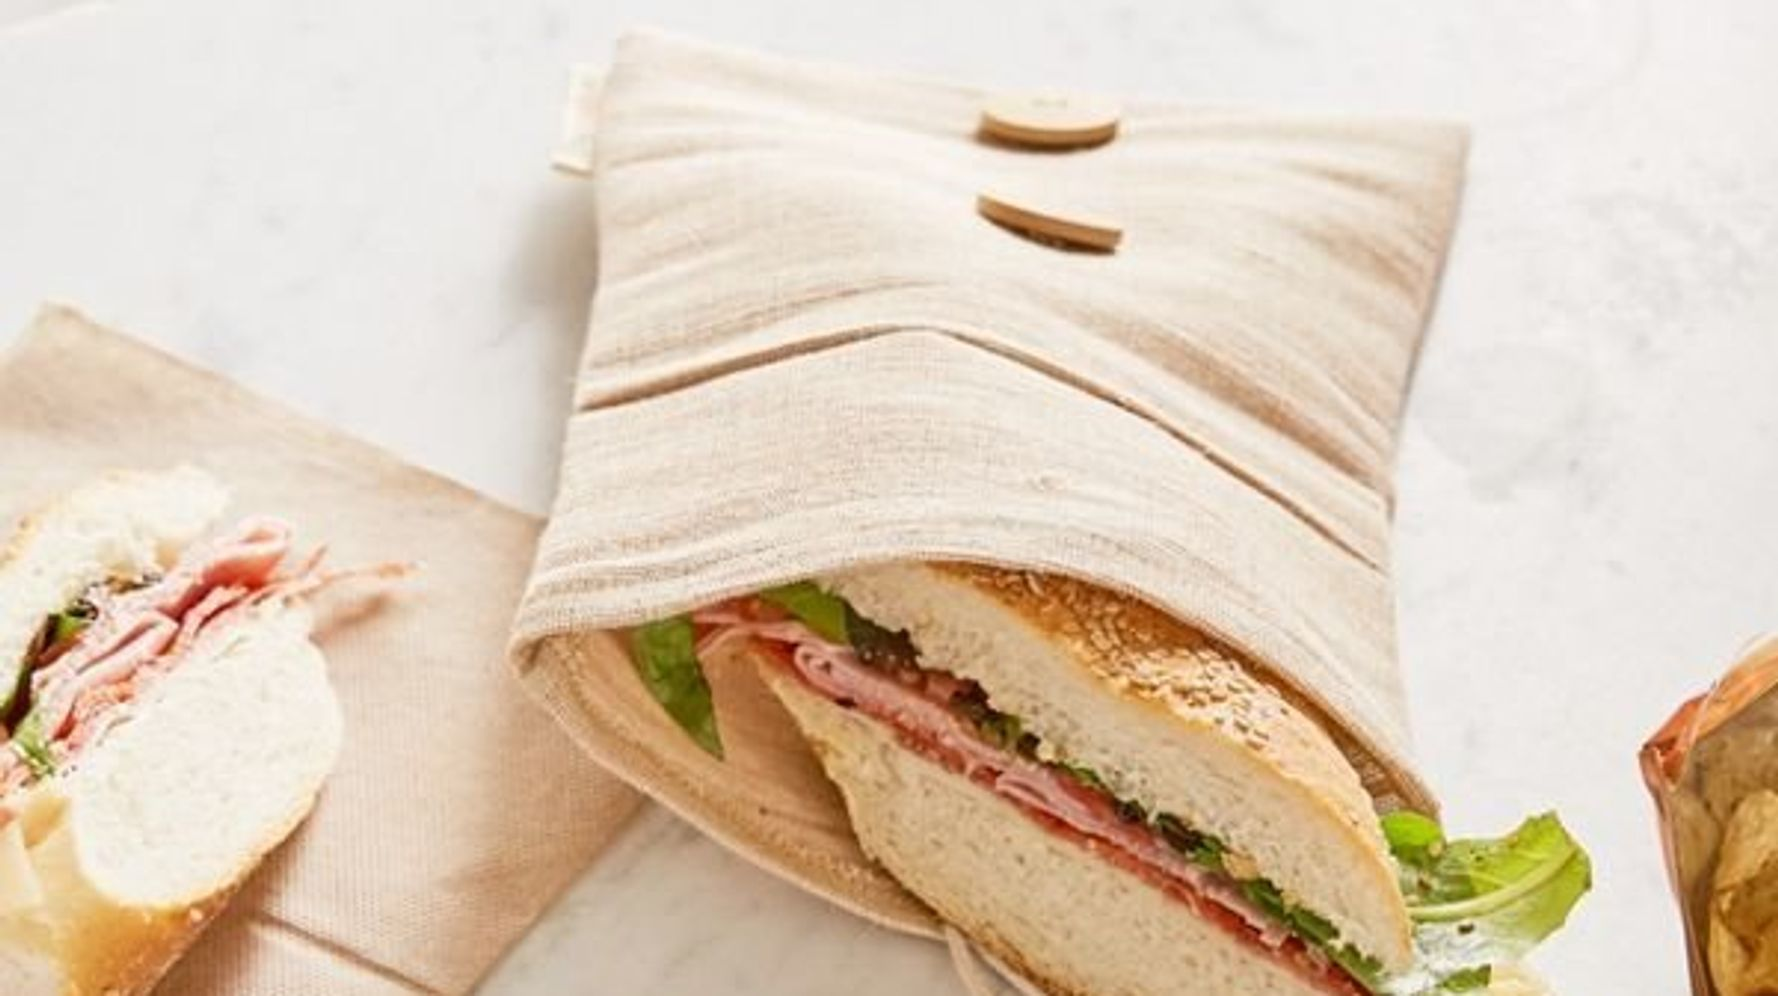 12 Sustainable Alternatives To Plastic Bags That Are Just As